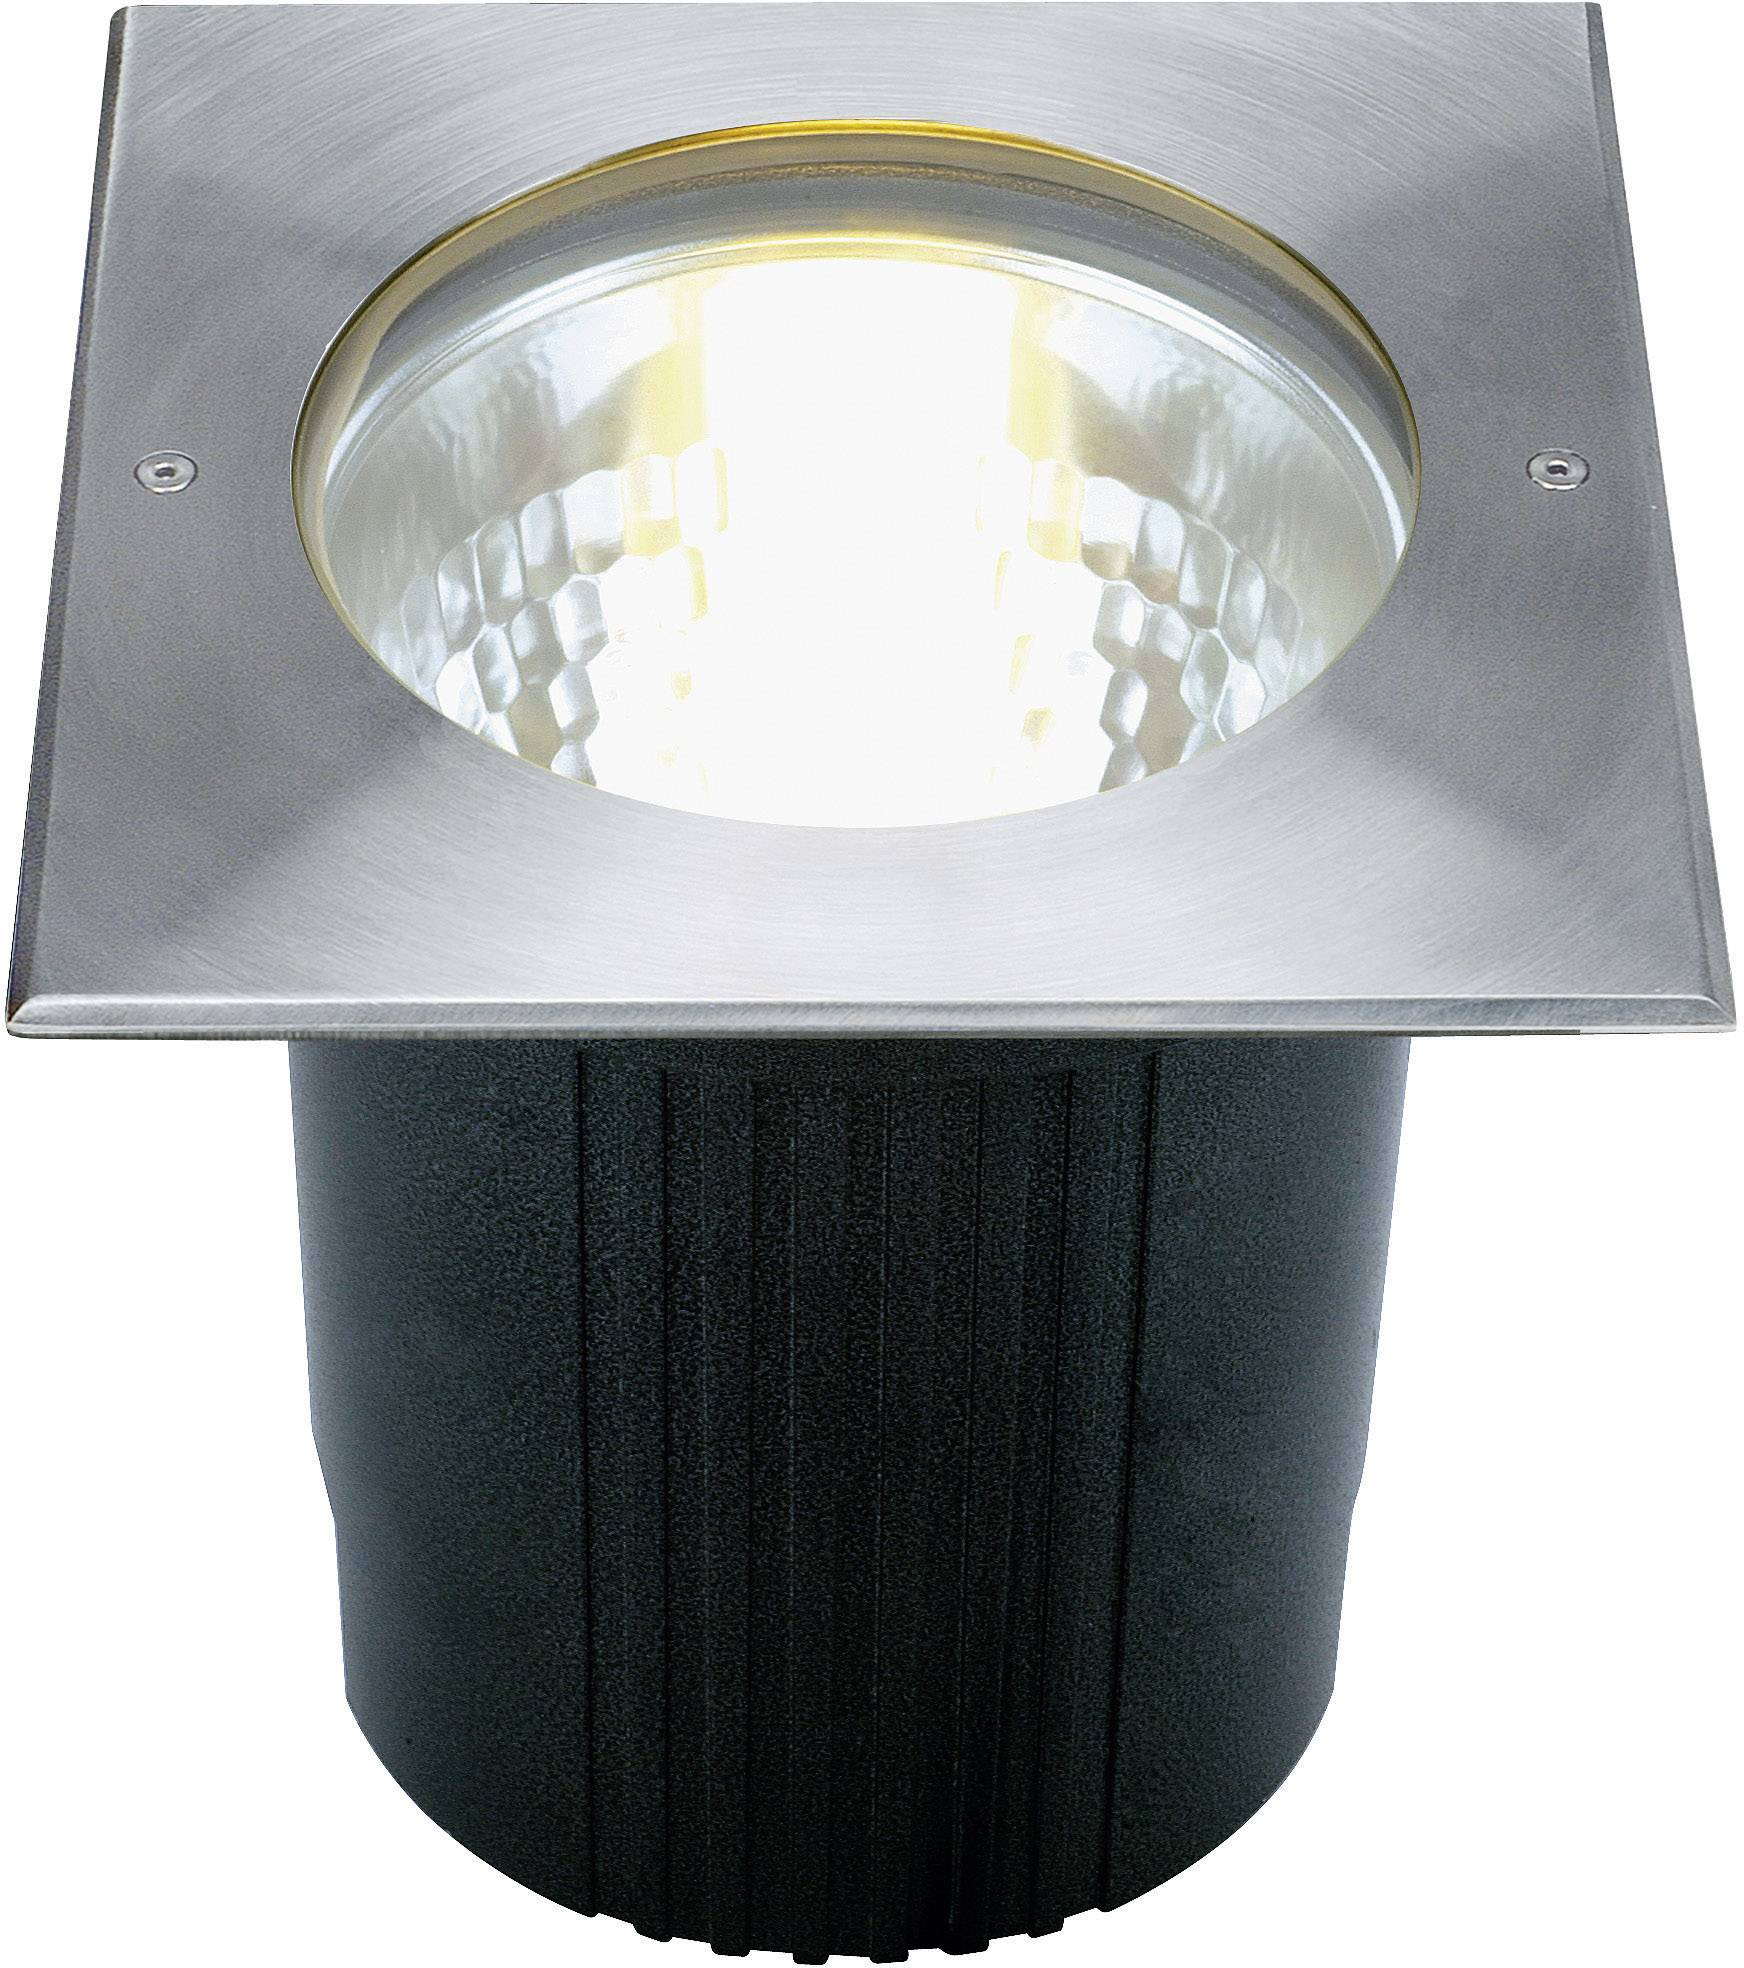 Recessed Light E27 Energy Saving Bulb